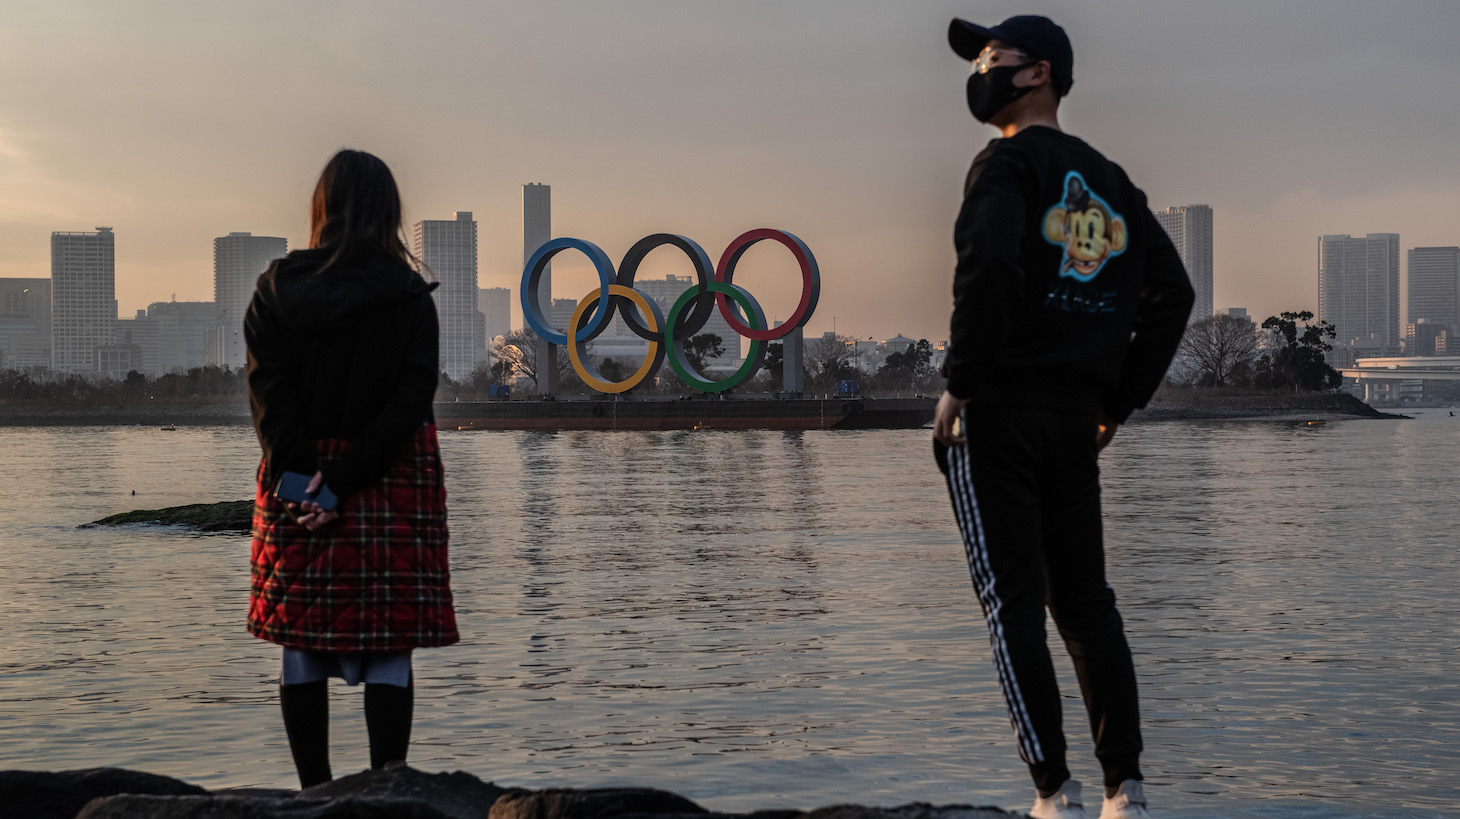 TOKYO, JAPAN - JANUARY 22: A woman and a man wearing a face mask view the Olympic Rings on January 22, 2021 in Tokyo, Japan. With just six months to go until the start of the Games, it has been reported that the Japanese authorities have privately concluded that the Olympics could not proceed due to the ongoing Covid-19 coronavirus pandemic. Spokesmen from the IOC and Japanese government have since rejected the report. (Photo by Carl Court/Getty Images)